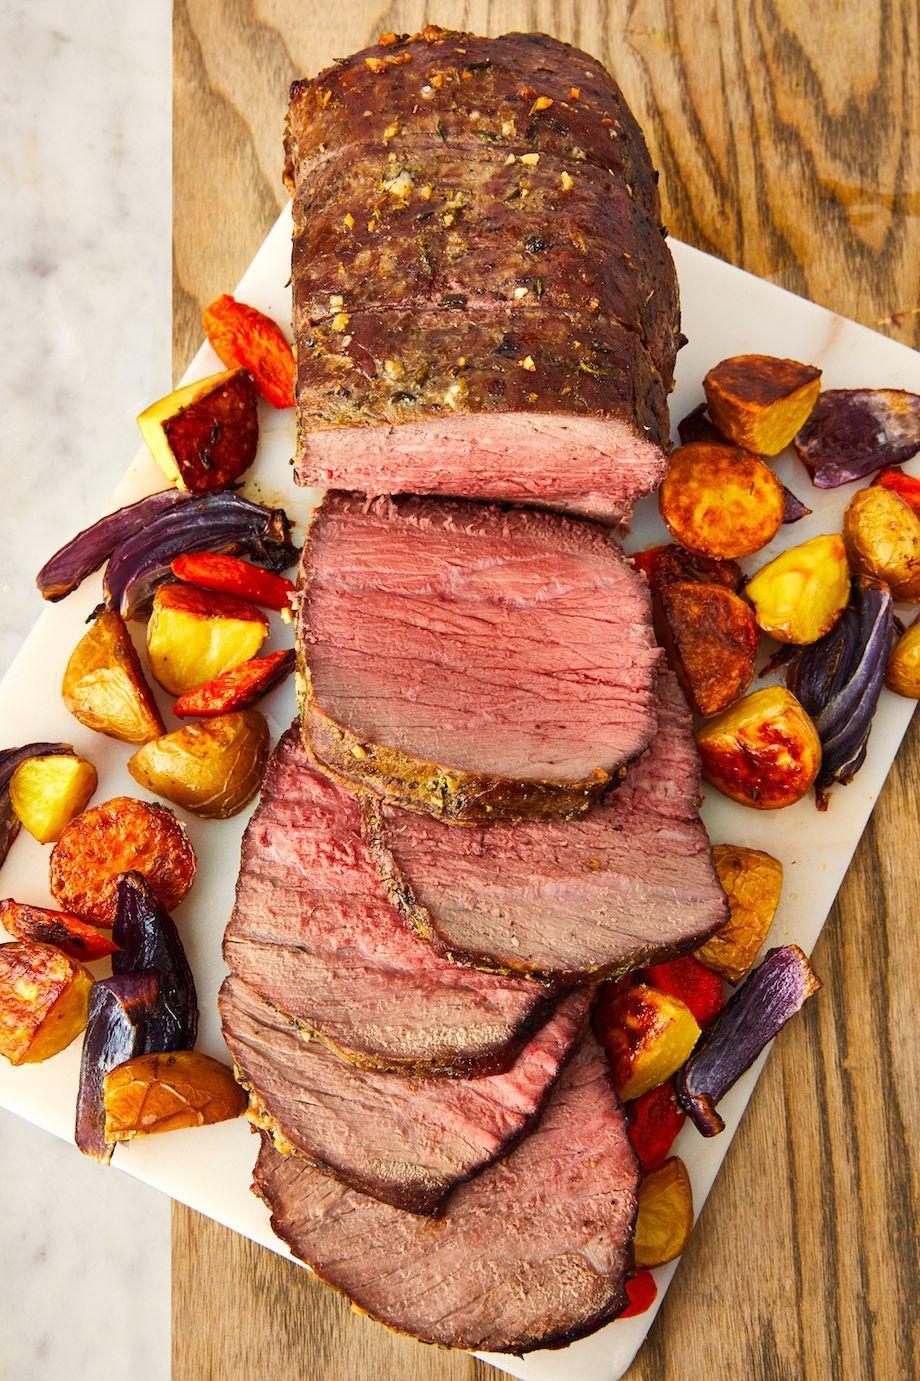 """<p>Impress your guests with this super flavourful recipe for roast beef.</p><p>Get the <a href=""""http://www.delish.com/uk/cooking/recipes/a28926155/perfect-roast-beef-recipe/"""" rel=""""nofollow noopener"""" target=""""_blank"""" data-ylk=""""slk:Roast Beef"""" class=""""link rapid-noclick-resp"""">Roast Beef</a> recipe. </p>"""